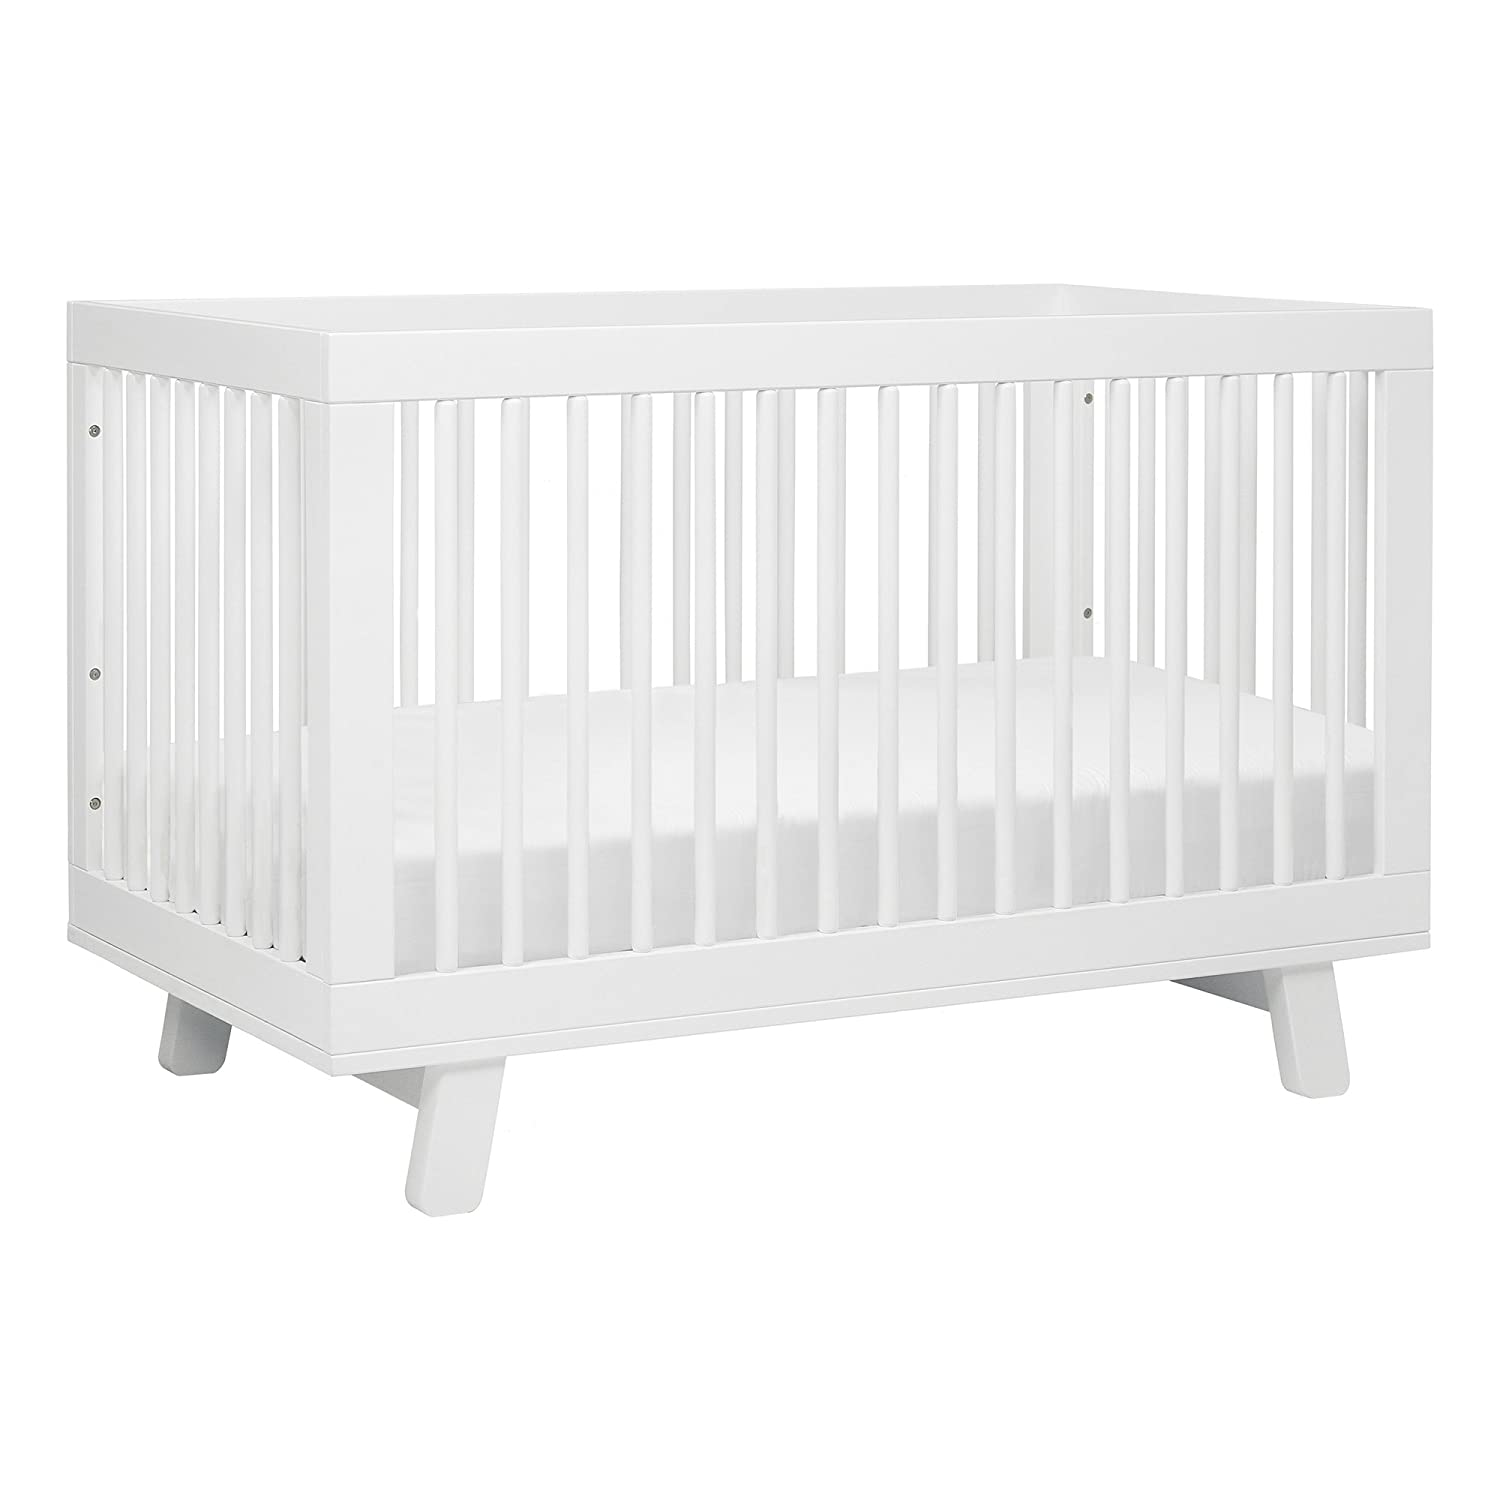 Non Toxic Mattress Ikea: Non-Toxic Baby Furniture And Nursery Essentials